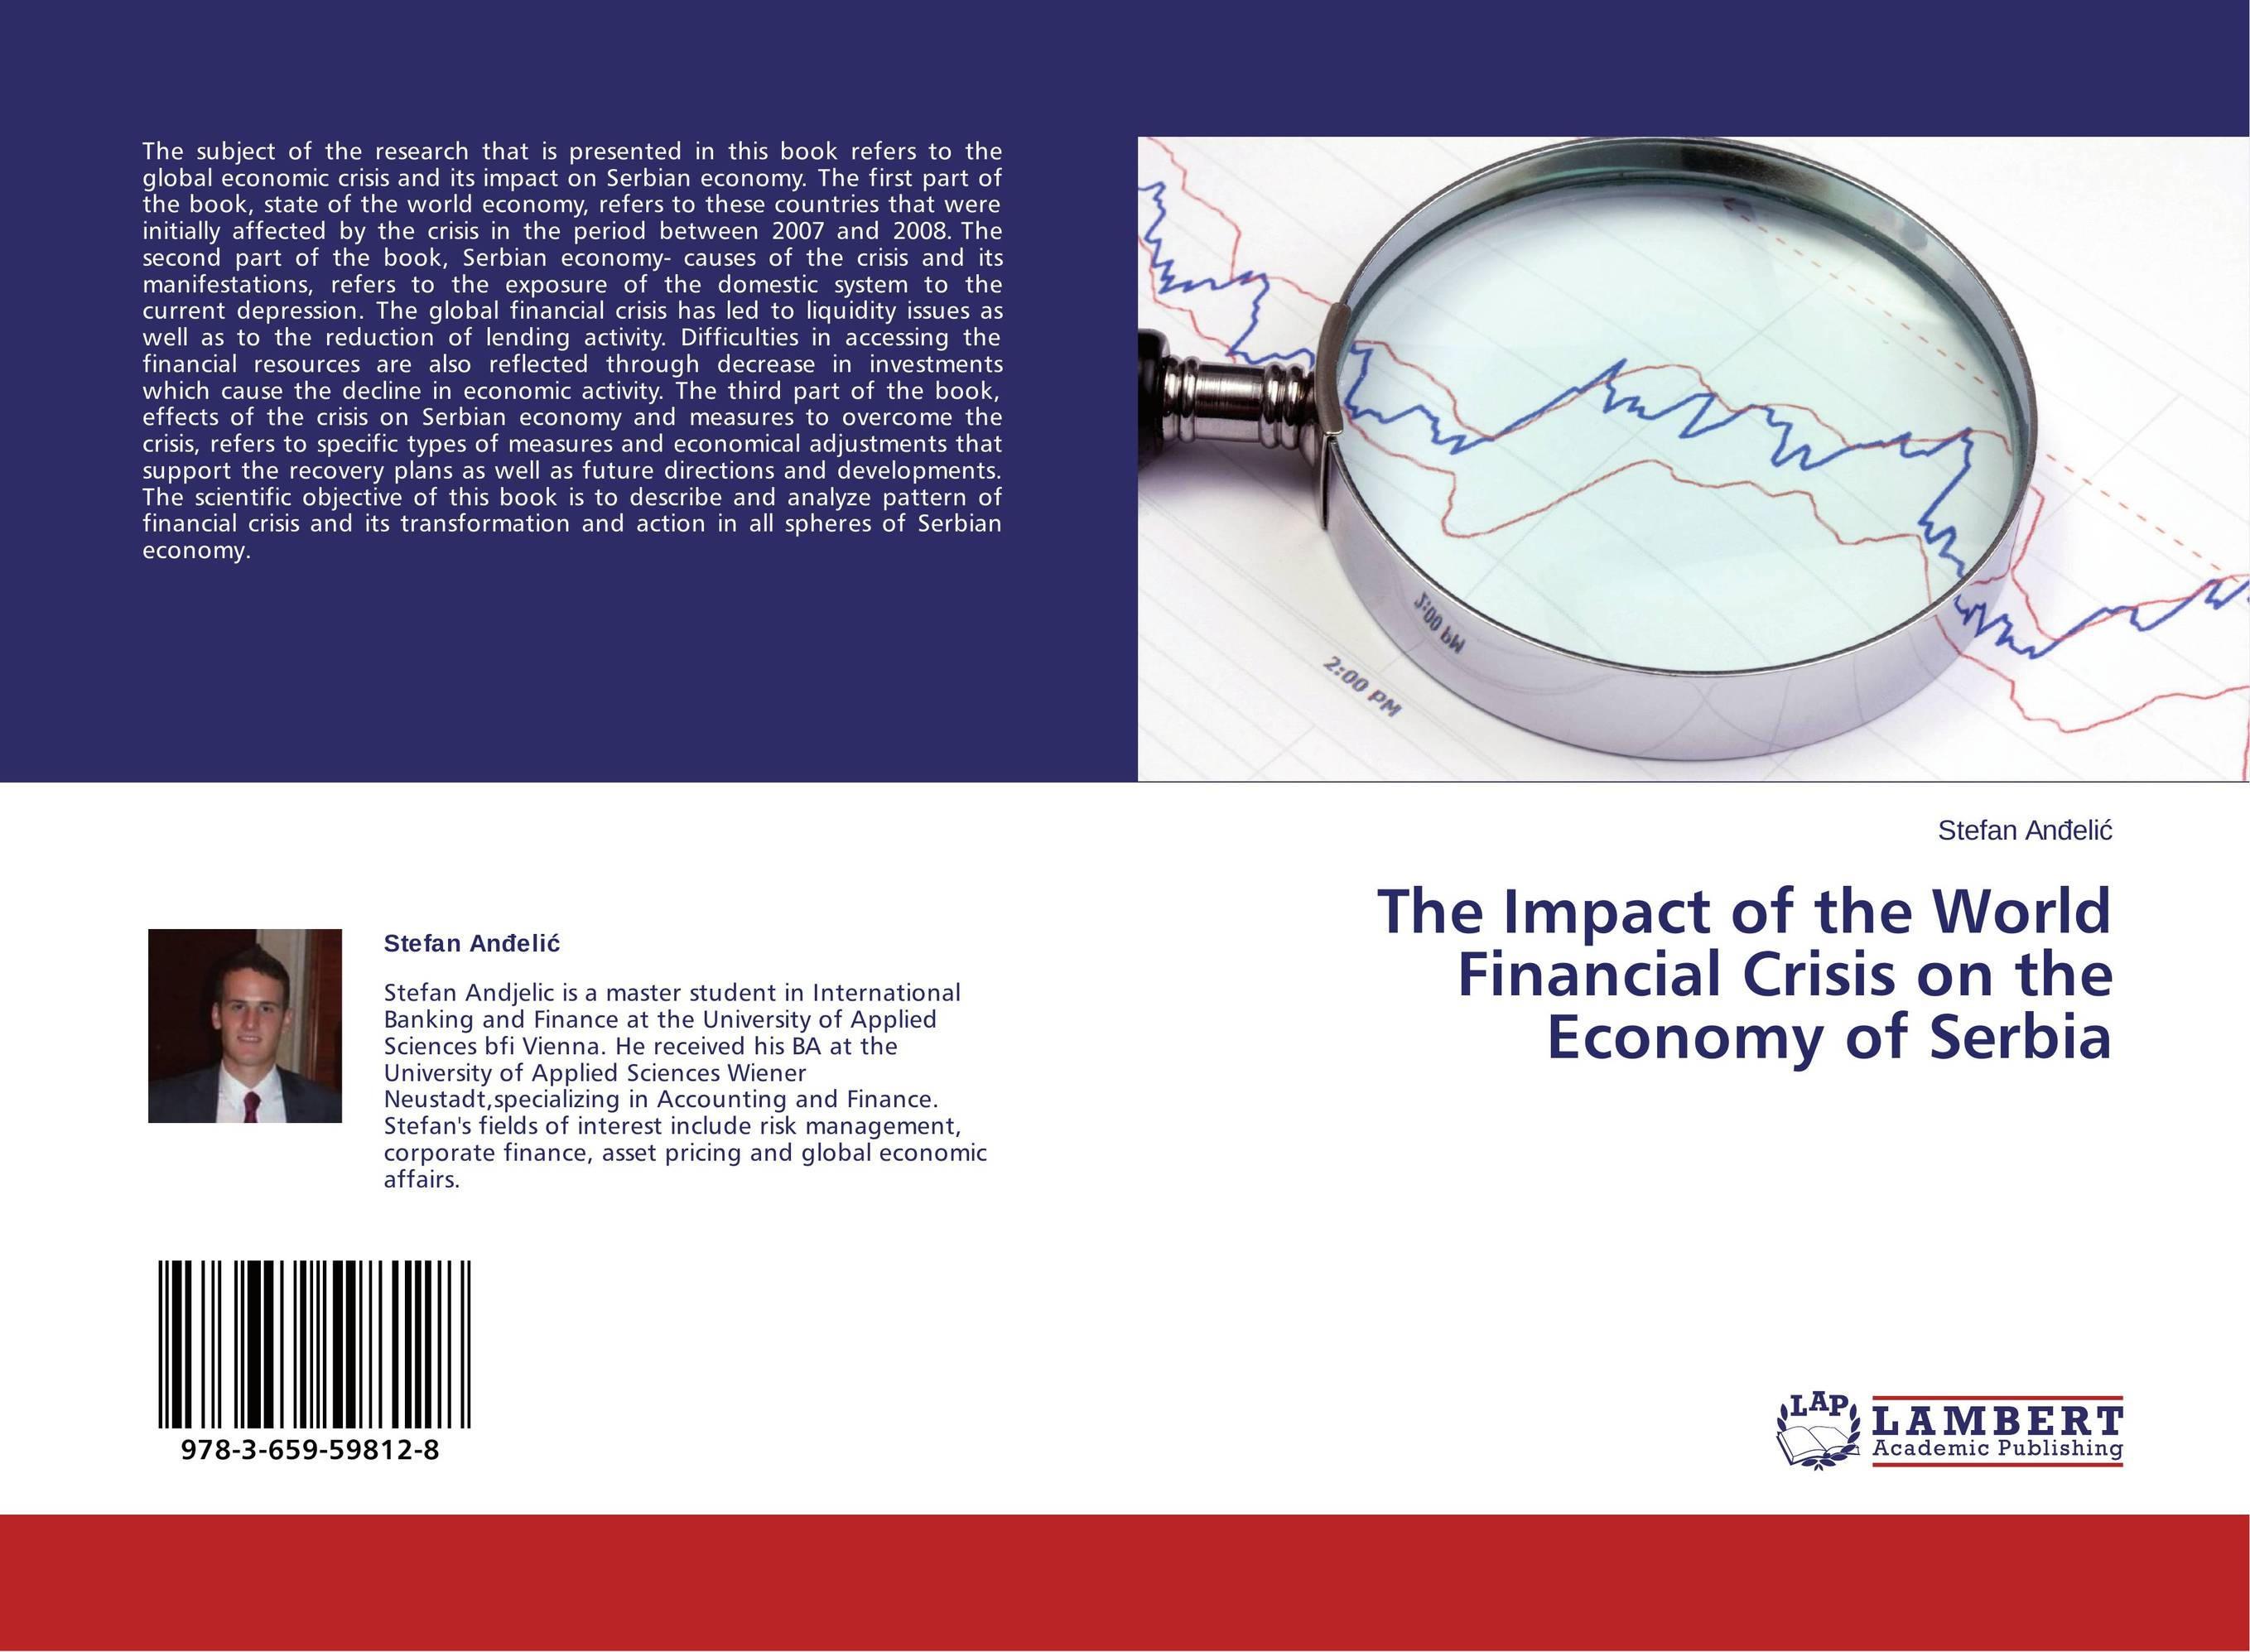 The Impact of the World Financial Crisis on the Economy of Serbia